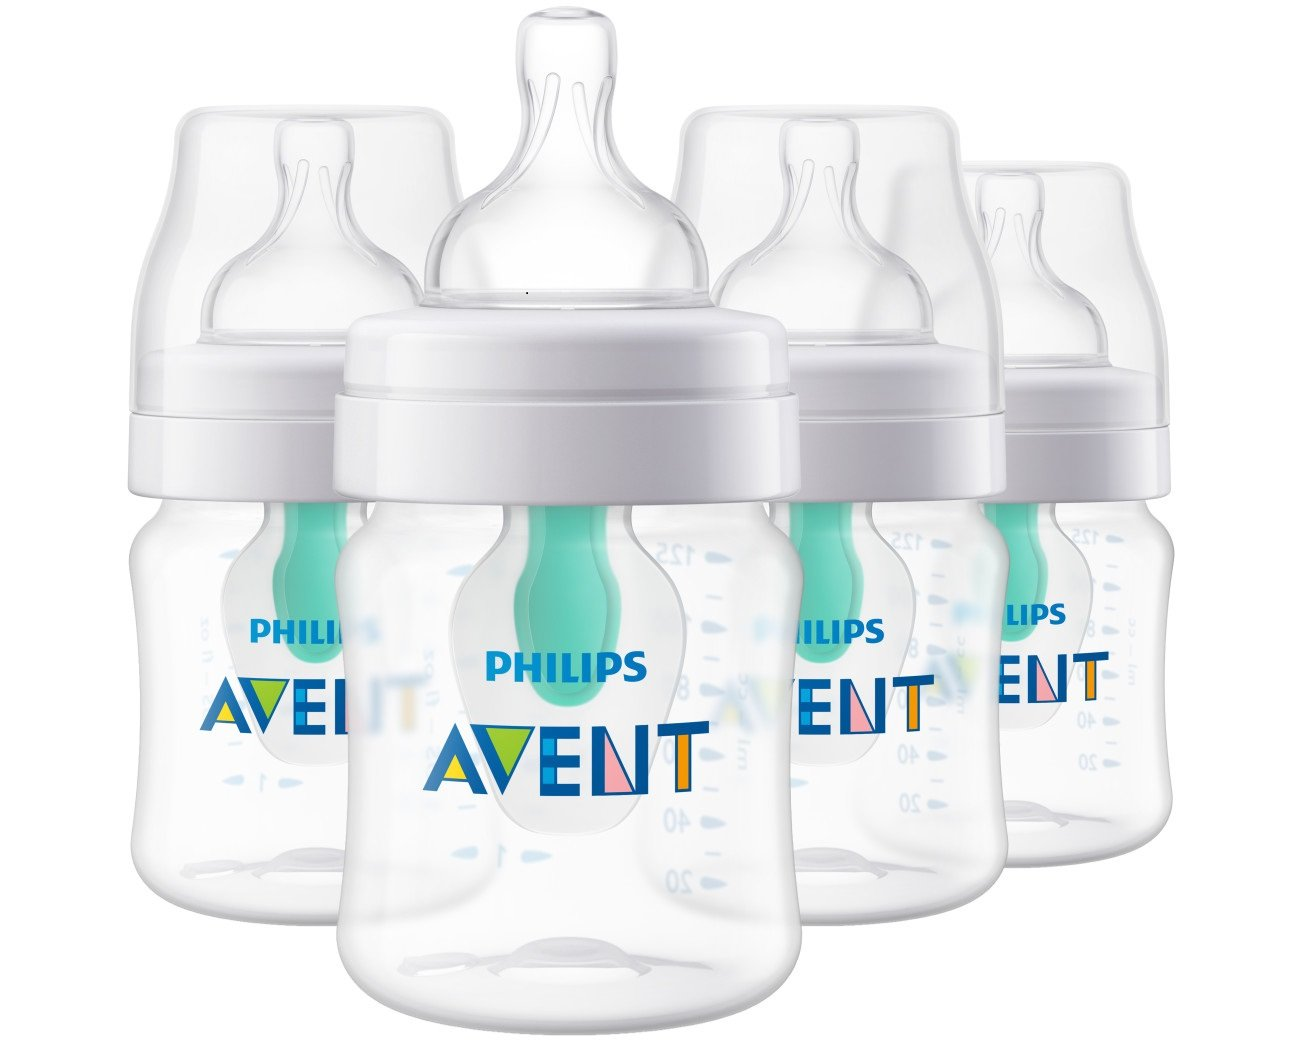 6f956e1a7f9 Amazon.com   Philips Avent Anti-colic Baby Bottle with AirFree vent ...